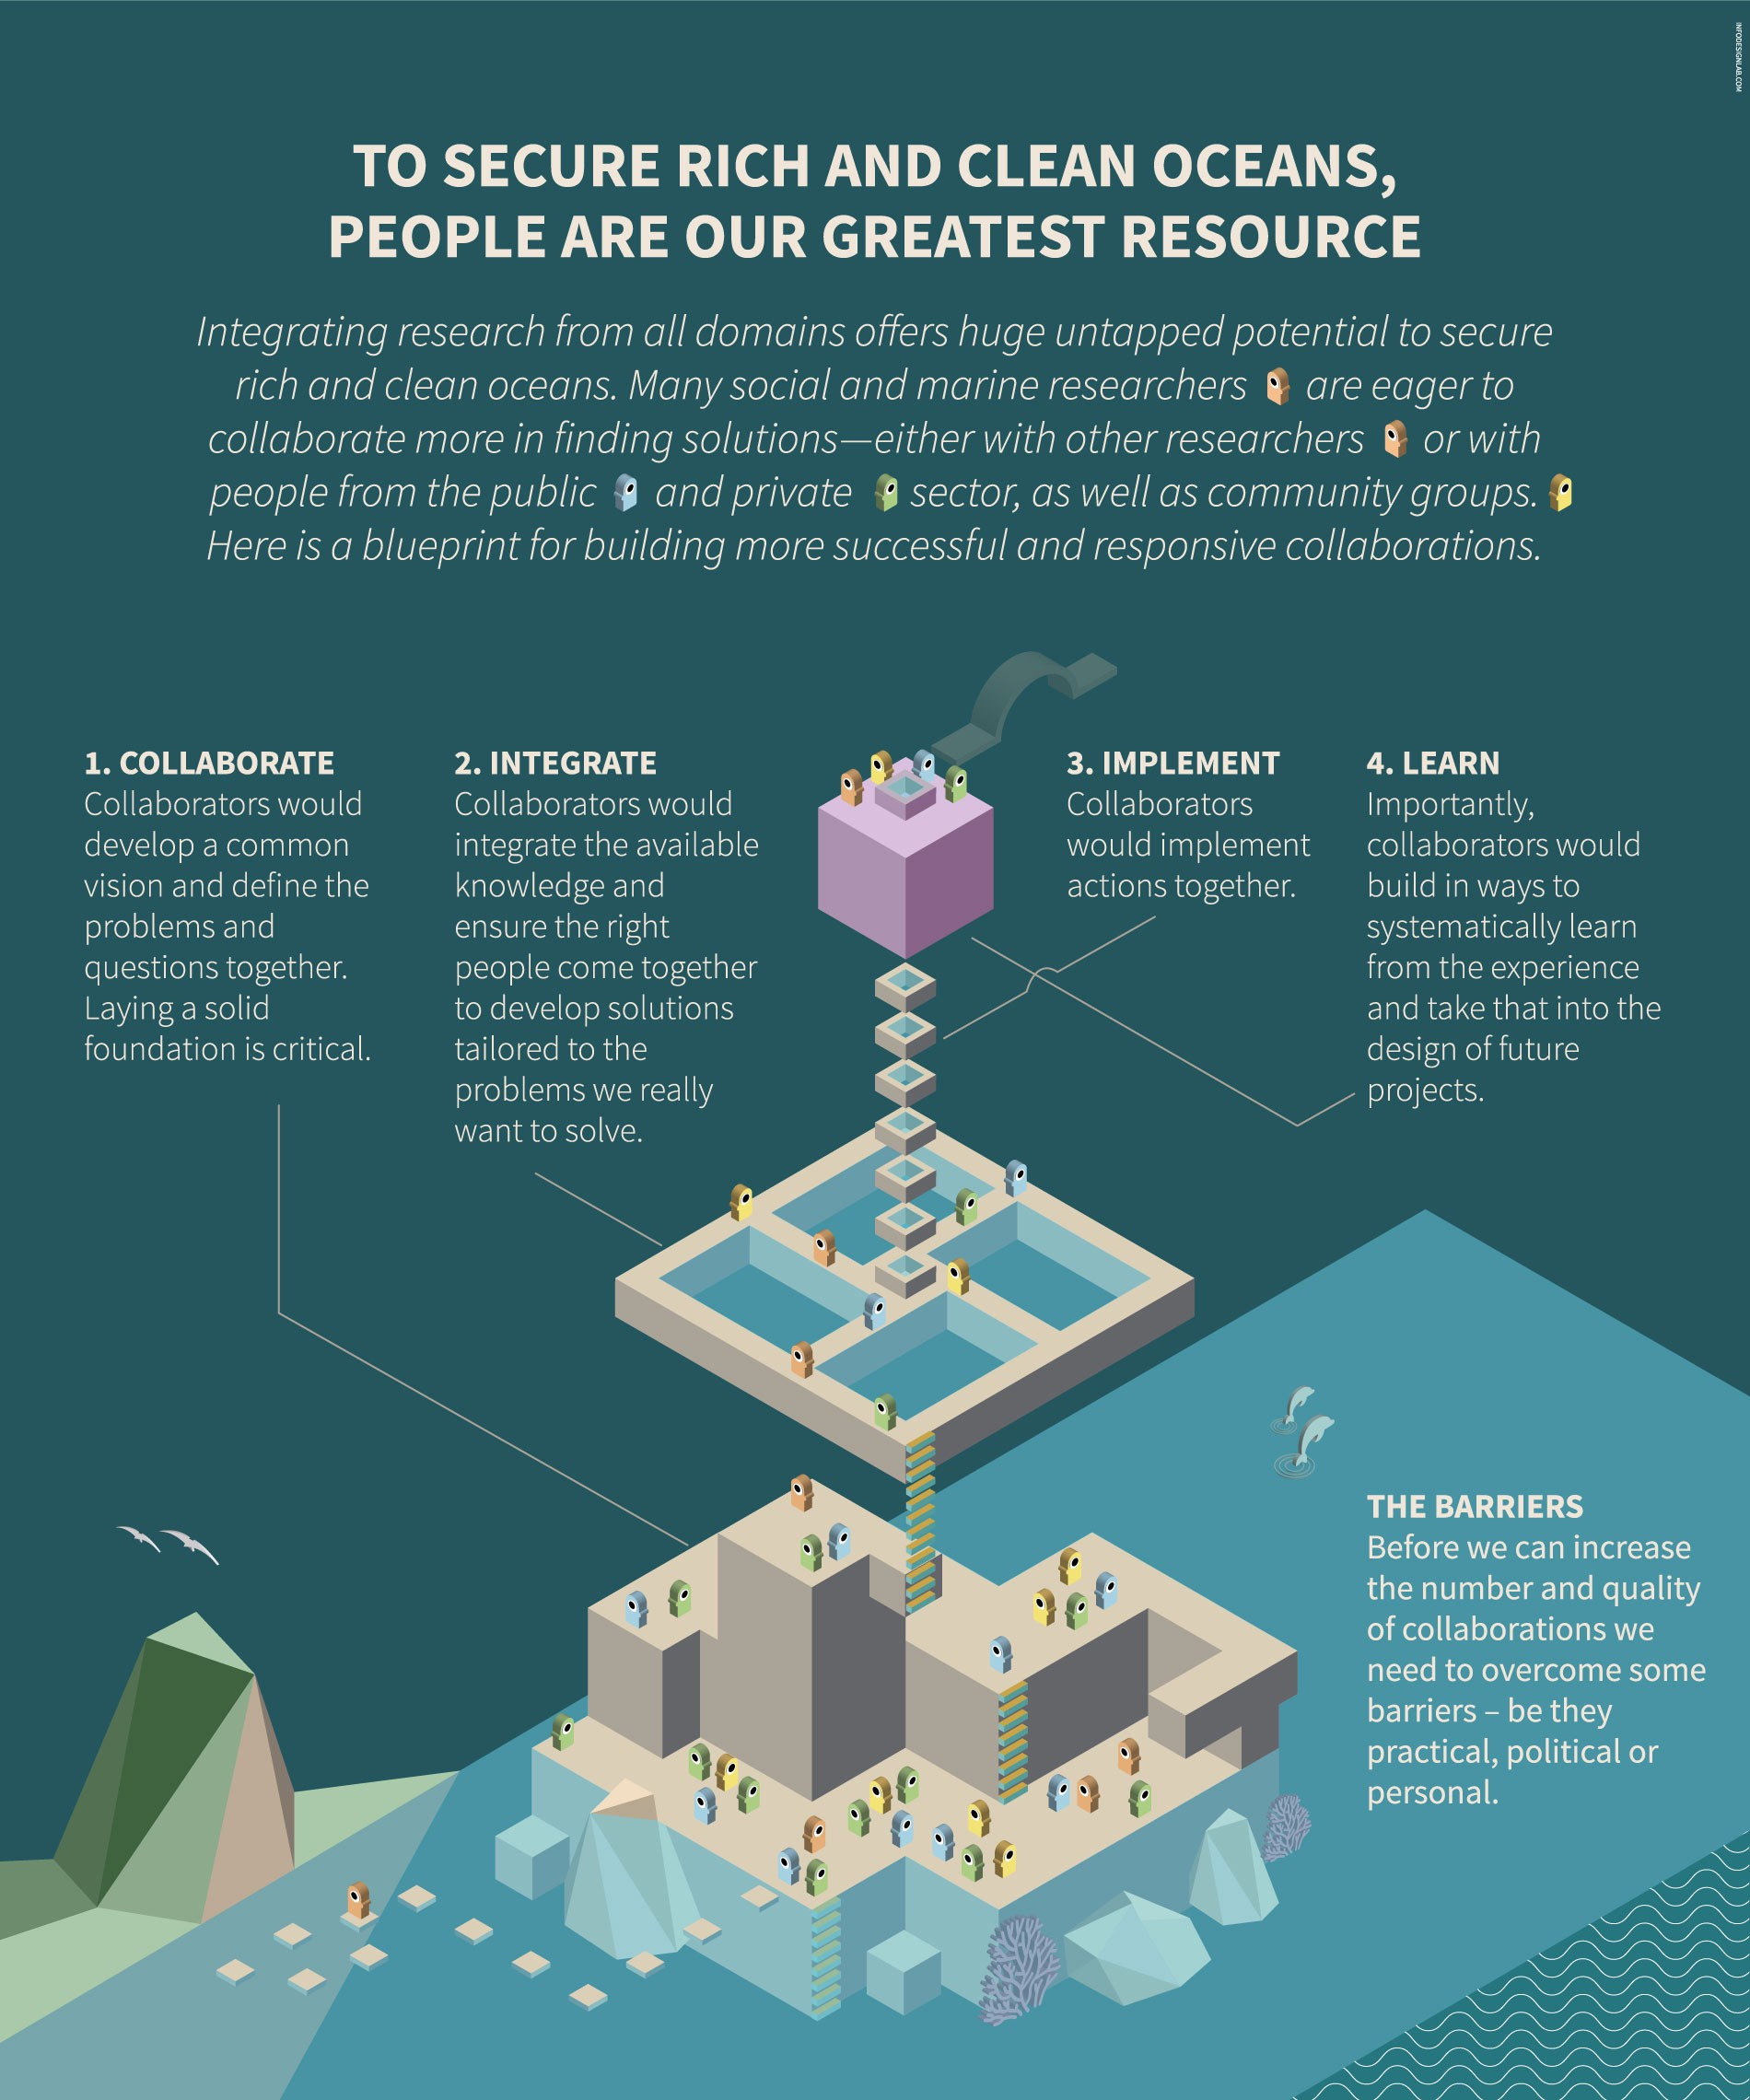 To secure rich and clean oceans people are our greatest resource a blueprint for building more successful and responsive collaborations to secure clean and rich oceans integrating research from all domains offers huge malvernweather Image collections